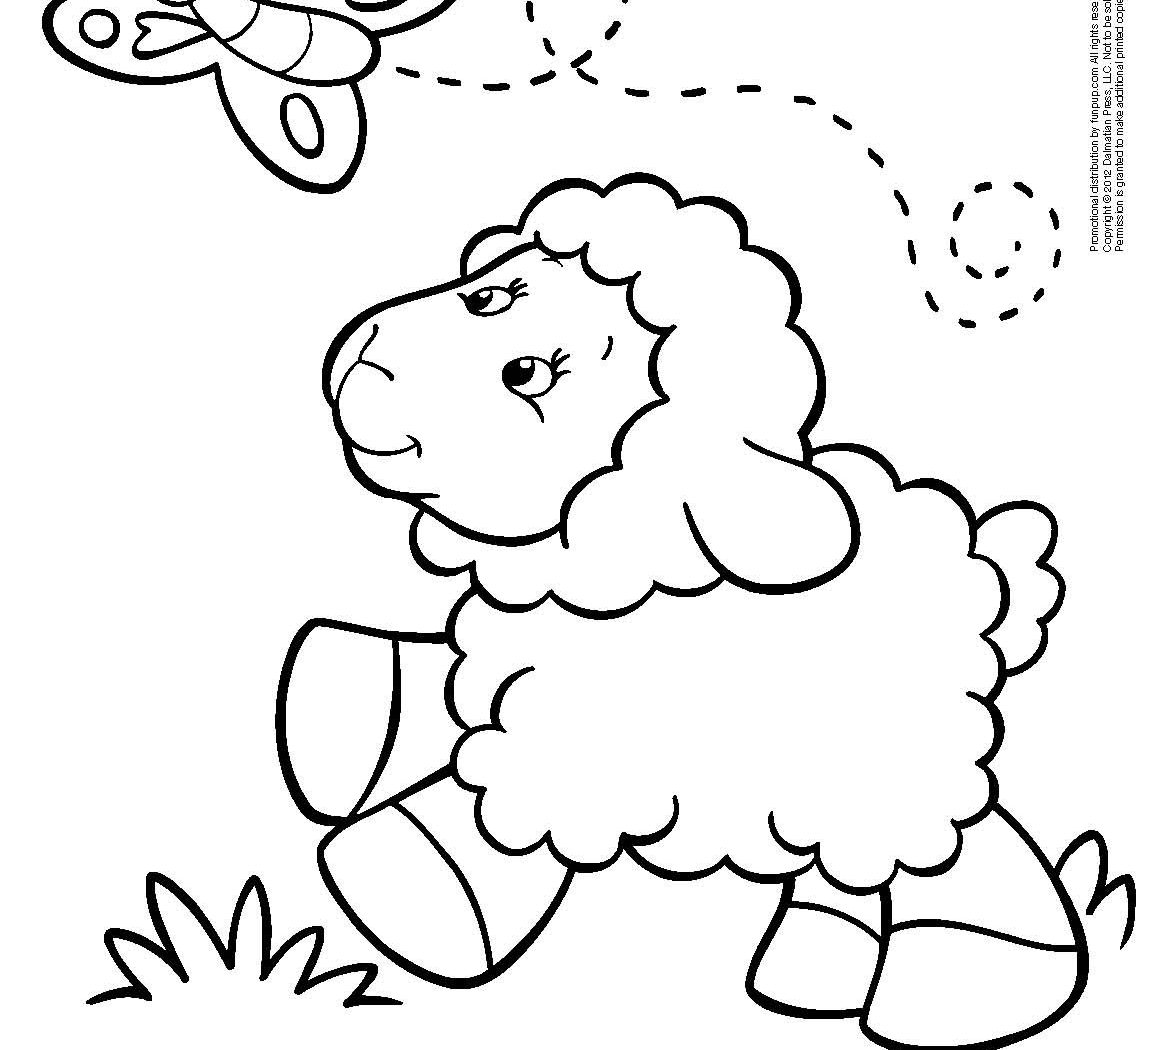 Sheep Images For Drawing at GetDrawings